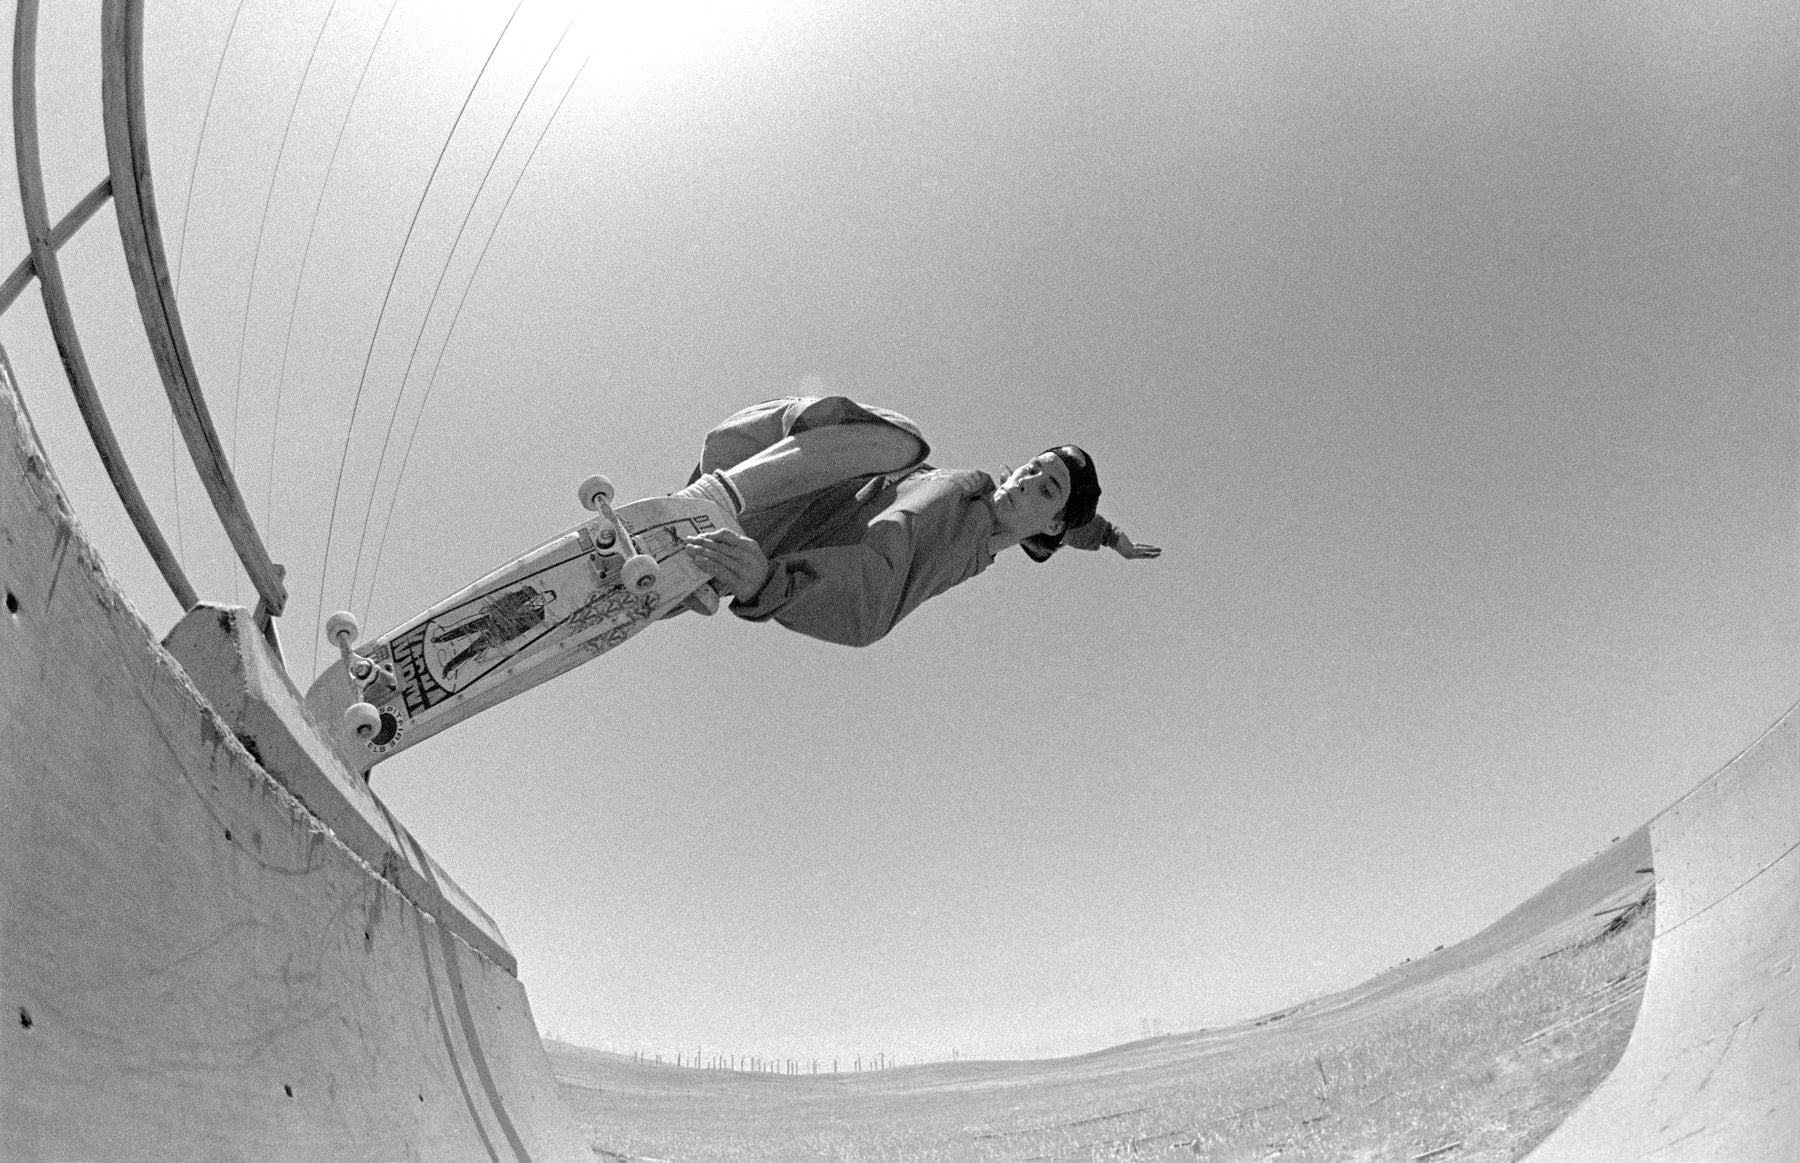 Image of John Cardiel, Crail, West Side Fwy CA 1992, Dogtown skateboards rider, by Tobin Yelland